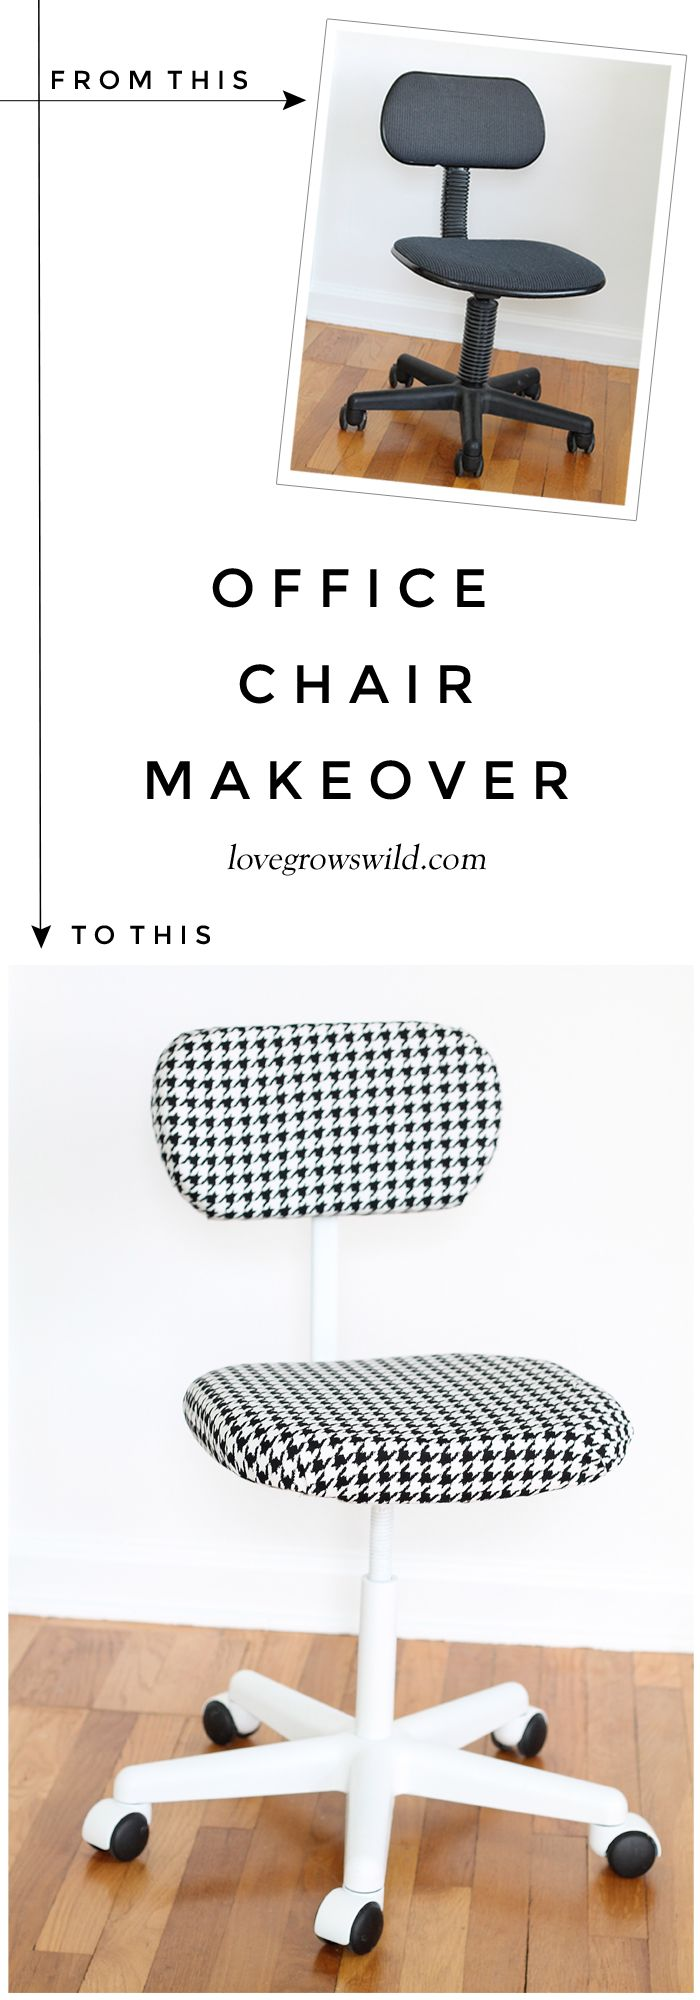 A $5 thrift store find turned into a sleek and stylish office chair! See the awesome step-by-step transformation at LoveGrowsWild.com